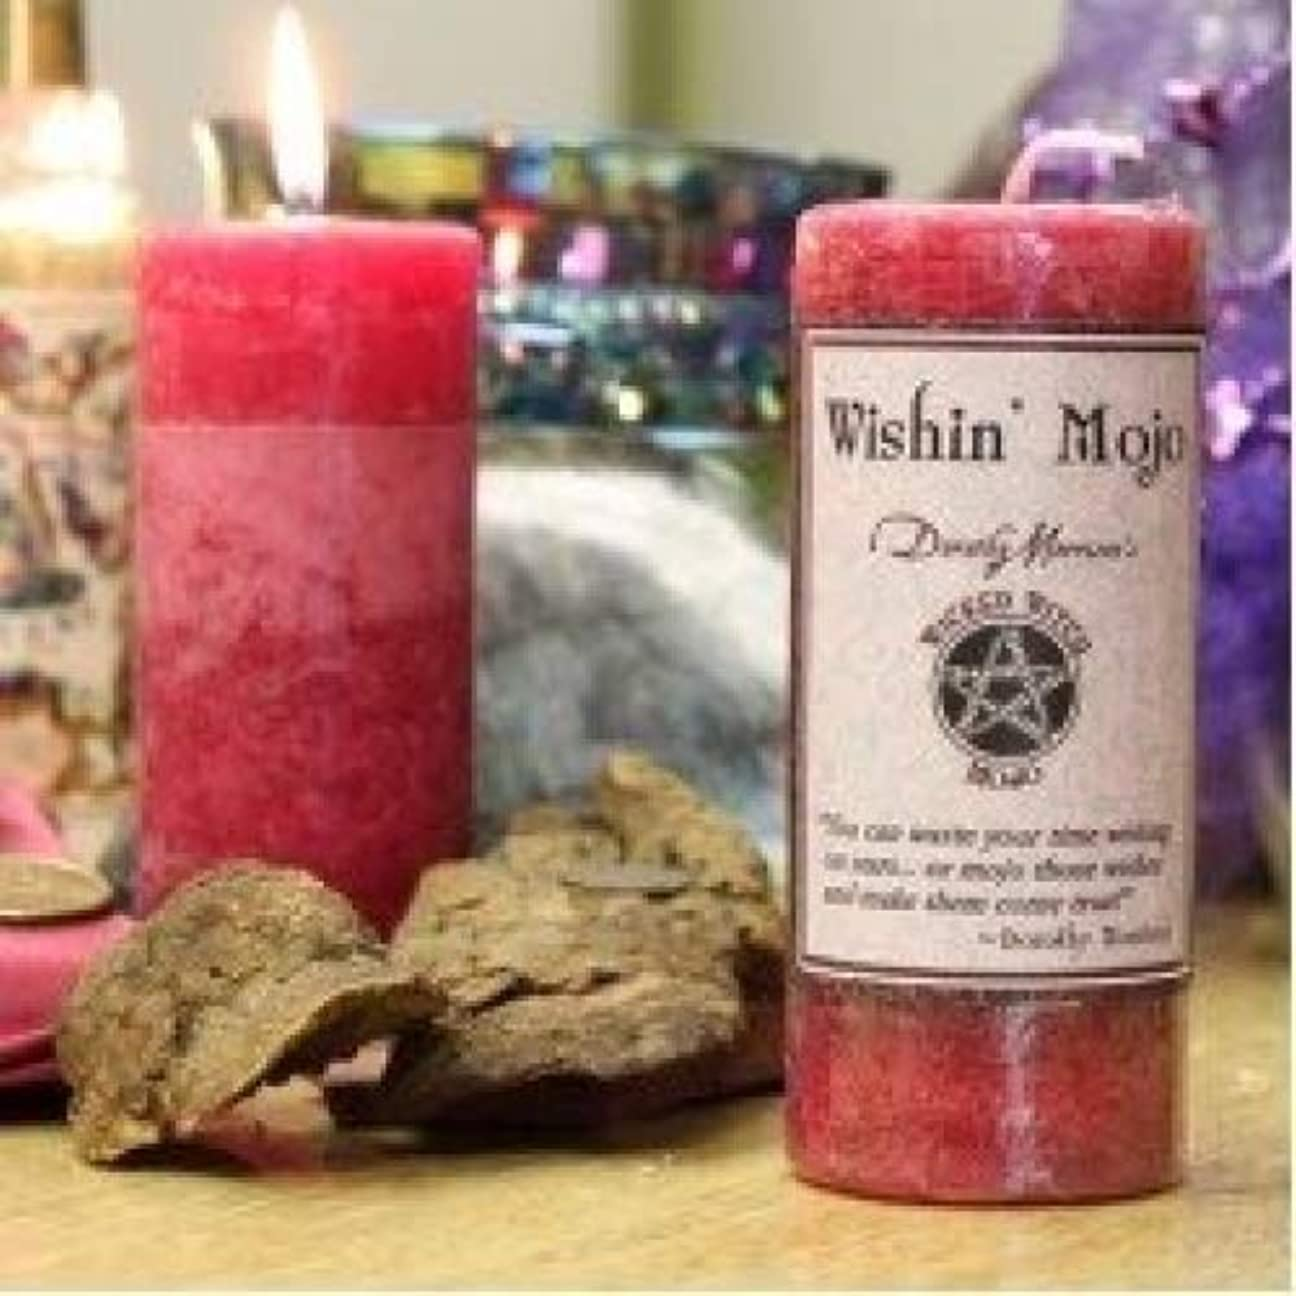 Wicked Witch Mojo Wishin Mojo Candle by Dorothy Morrison